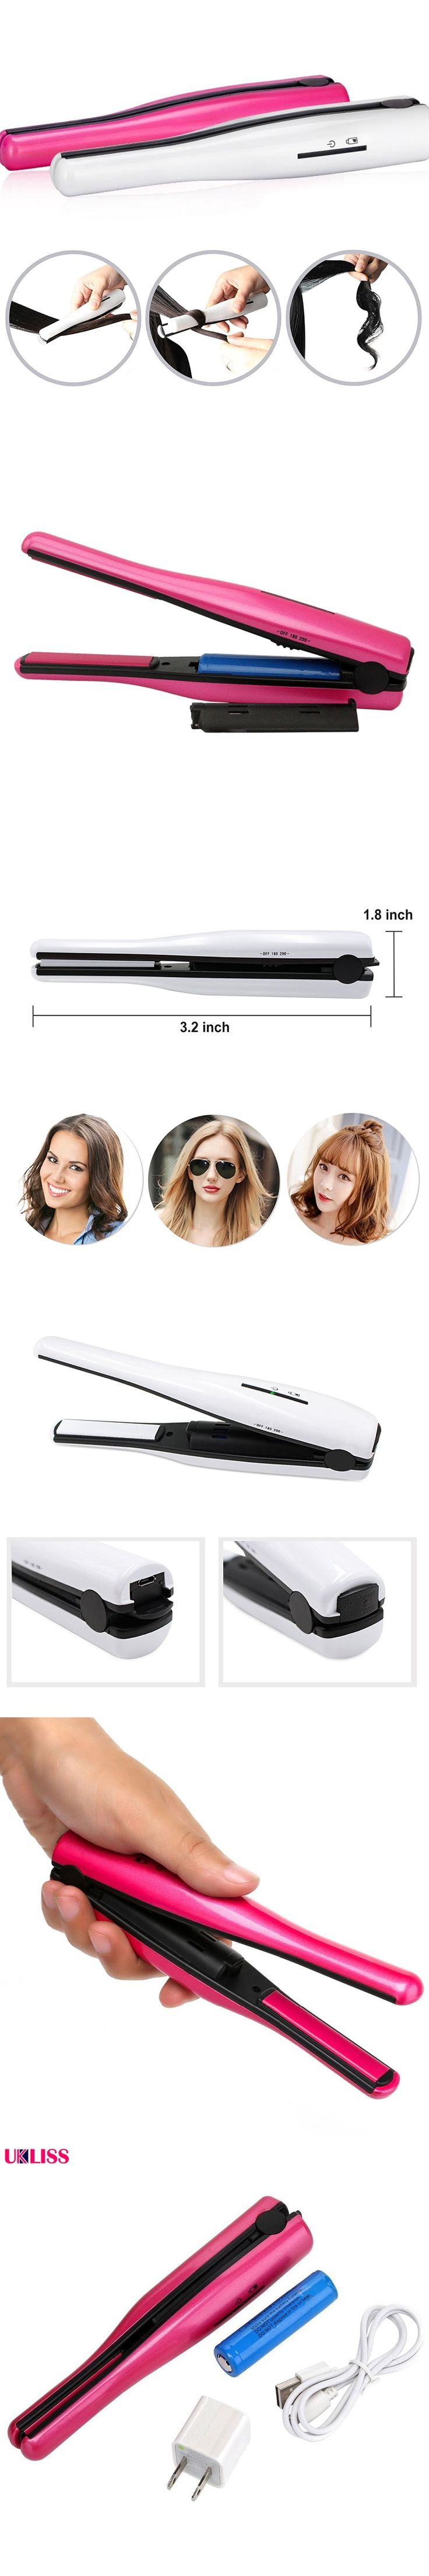 Travel Hair Straightener Portable USB Charge Wireless Hair Straight Iron Charging straight splint USB charging